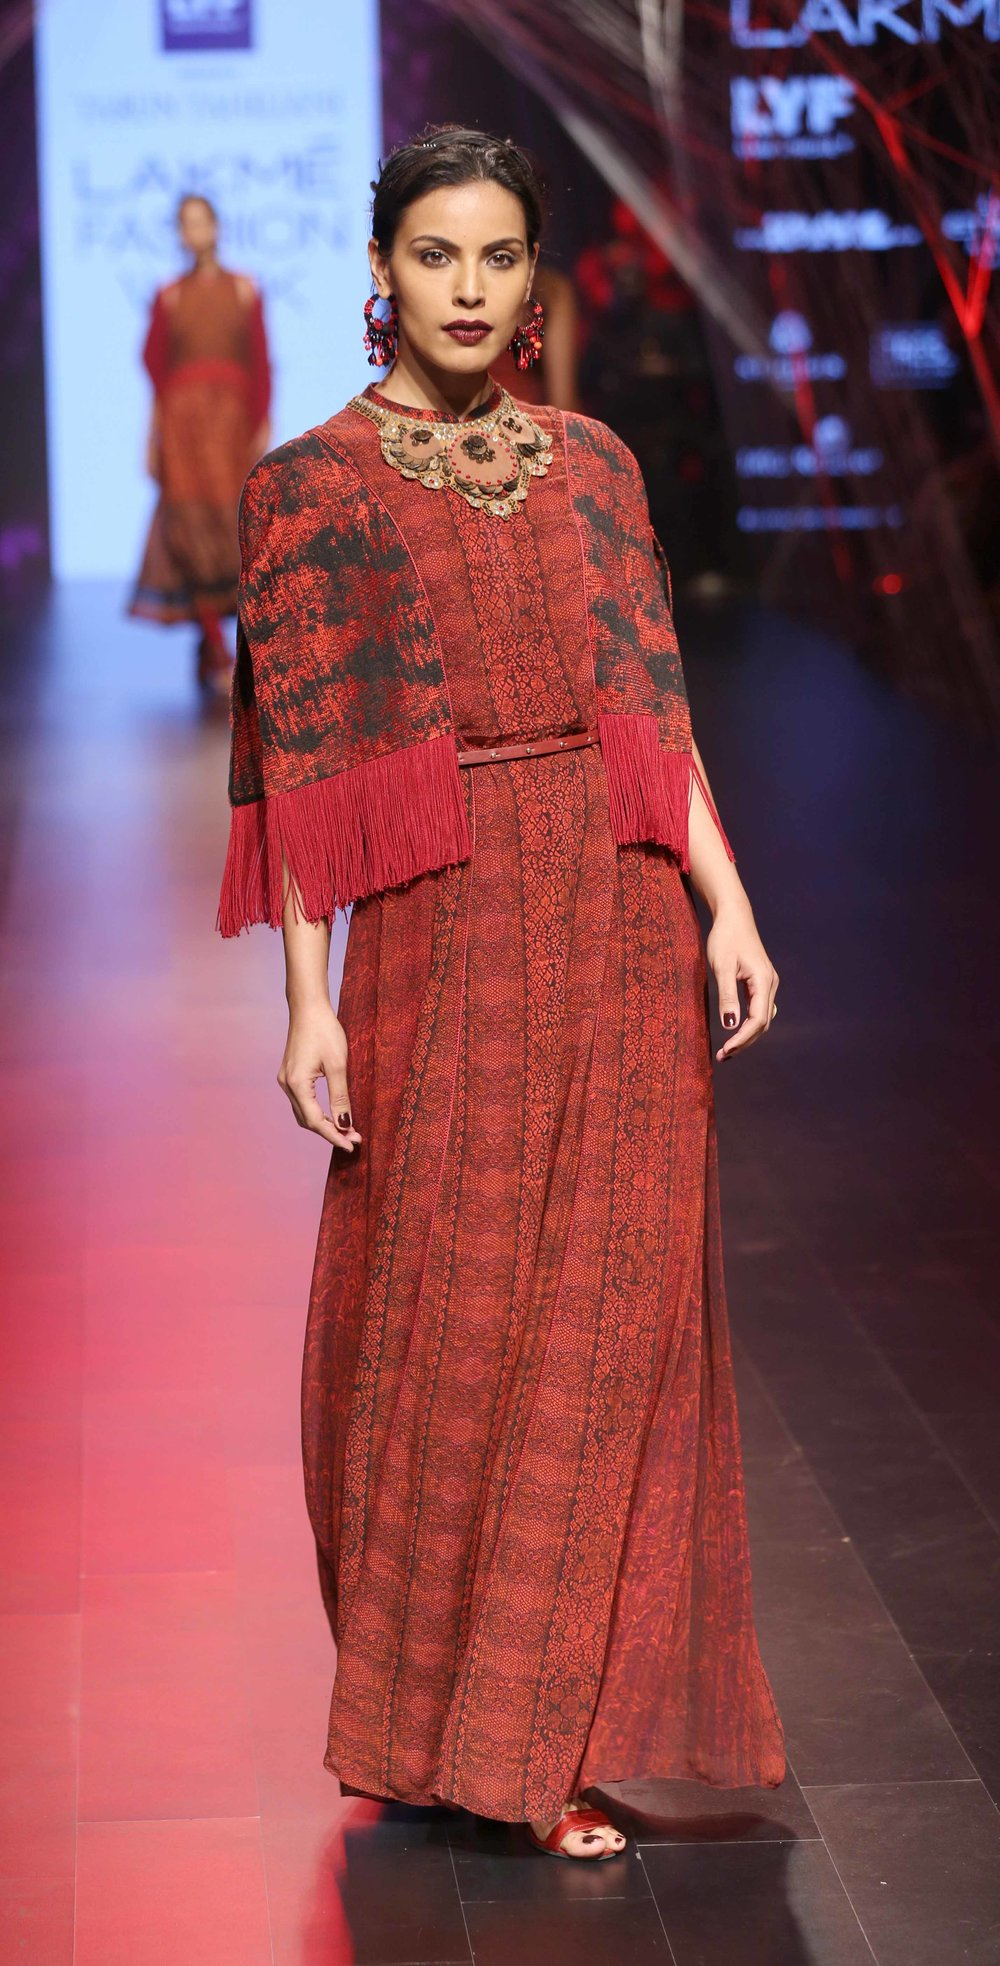 Model, Deepti Gujral walks the ramp for Tarun Tahiliani at Lakme Fashion....jpg